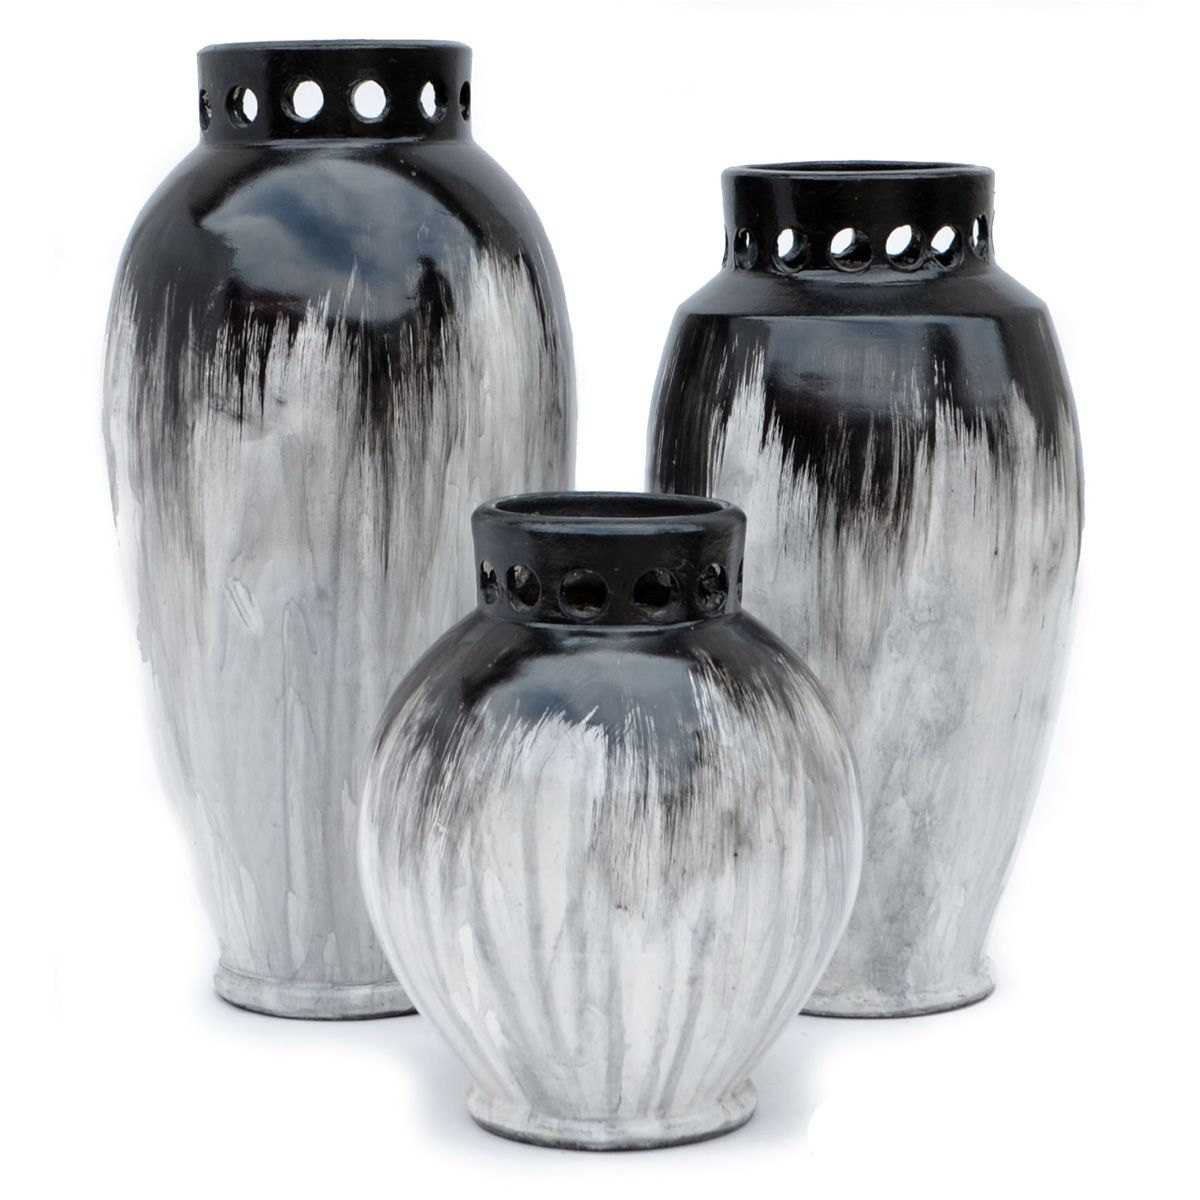 Luna Vases - Set of 3